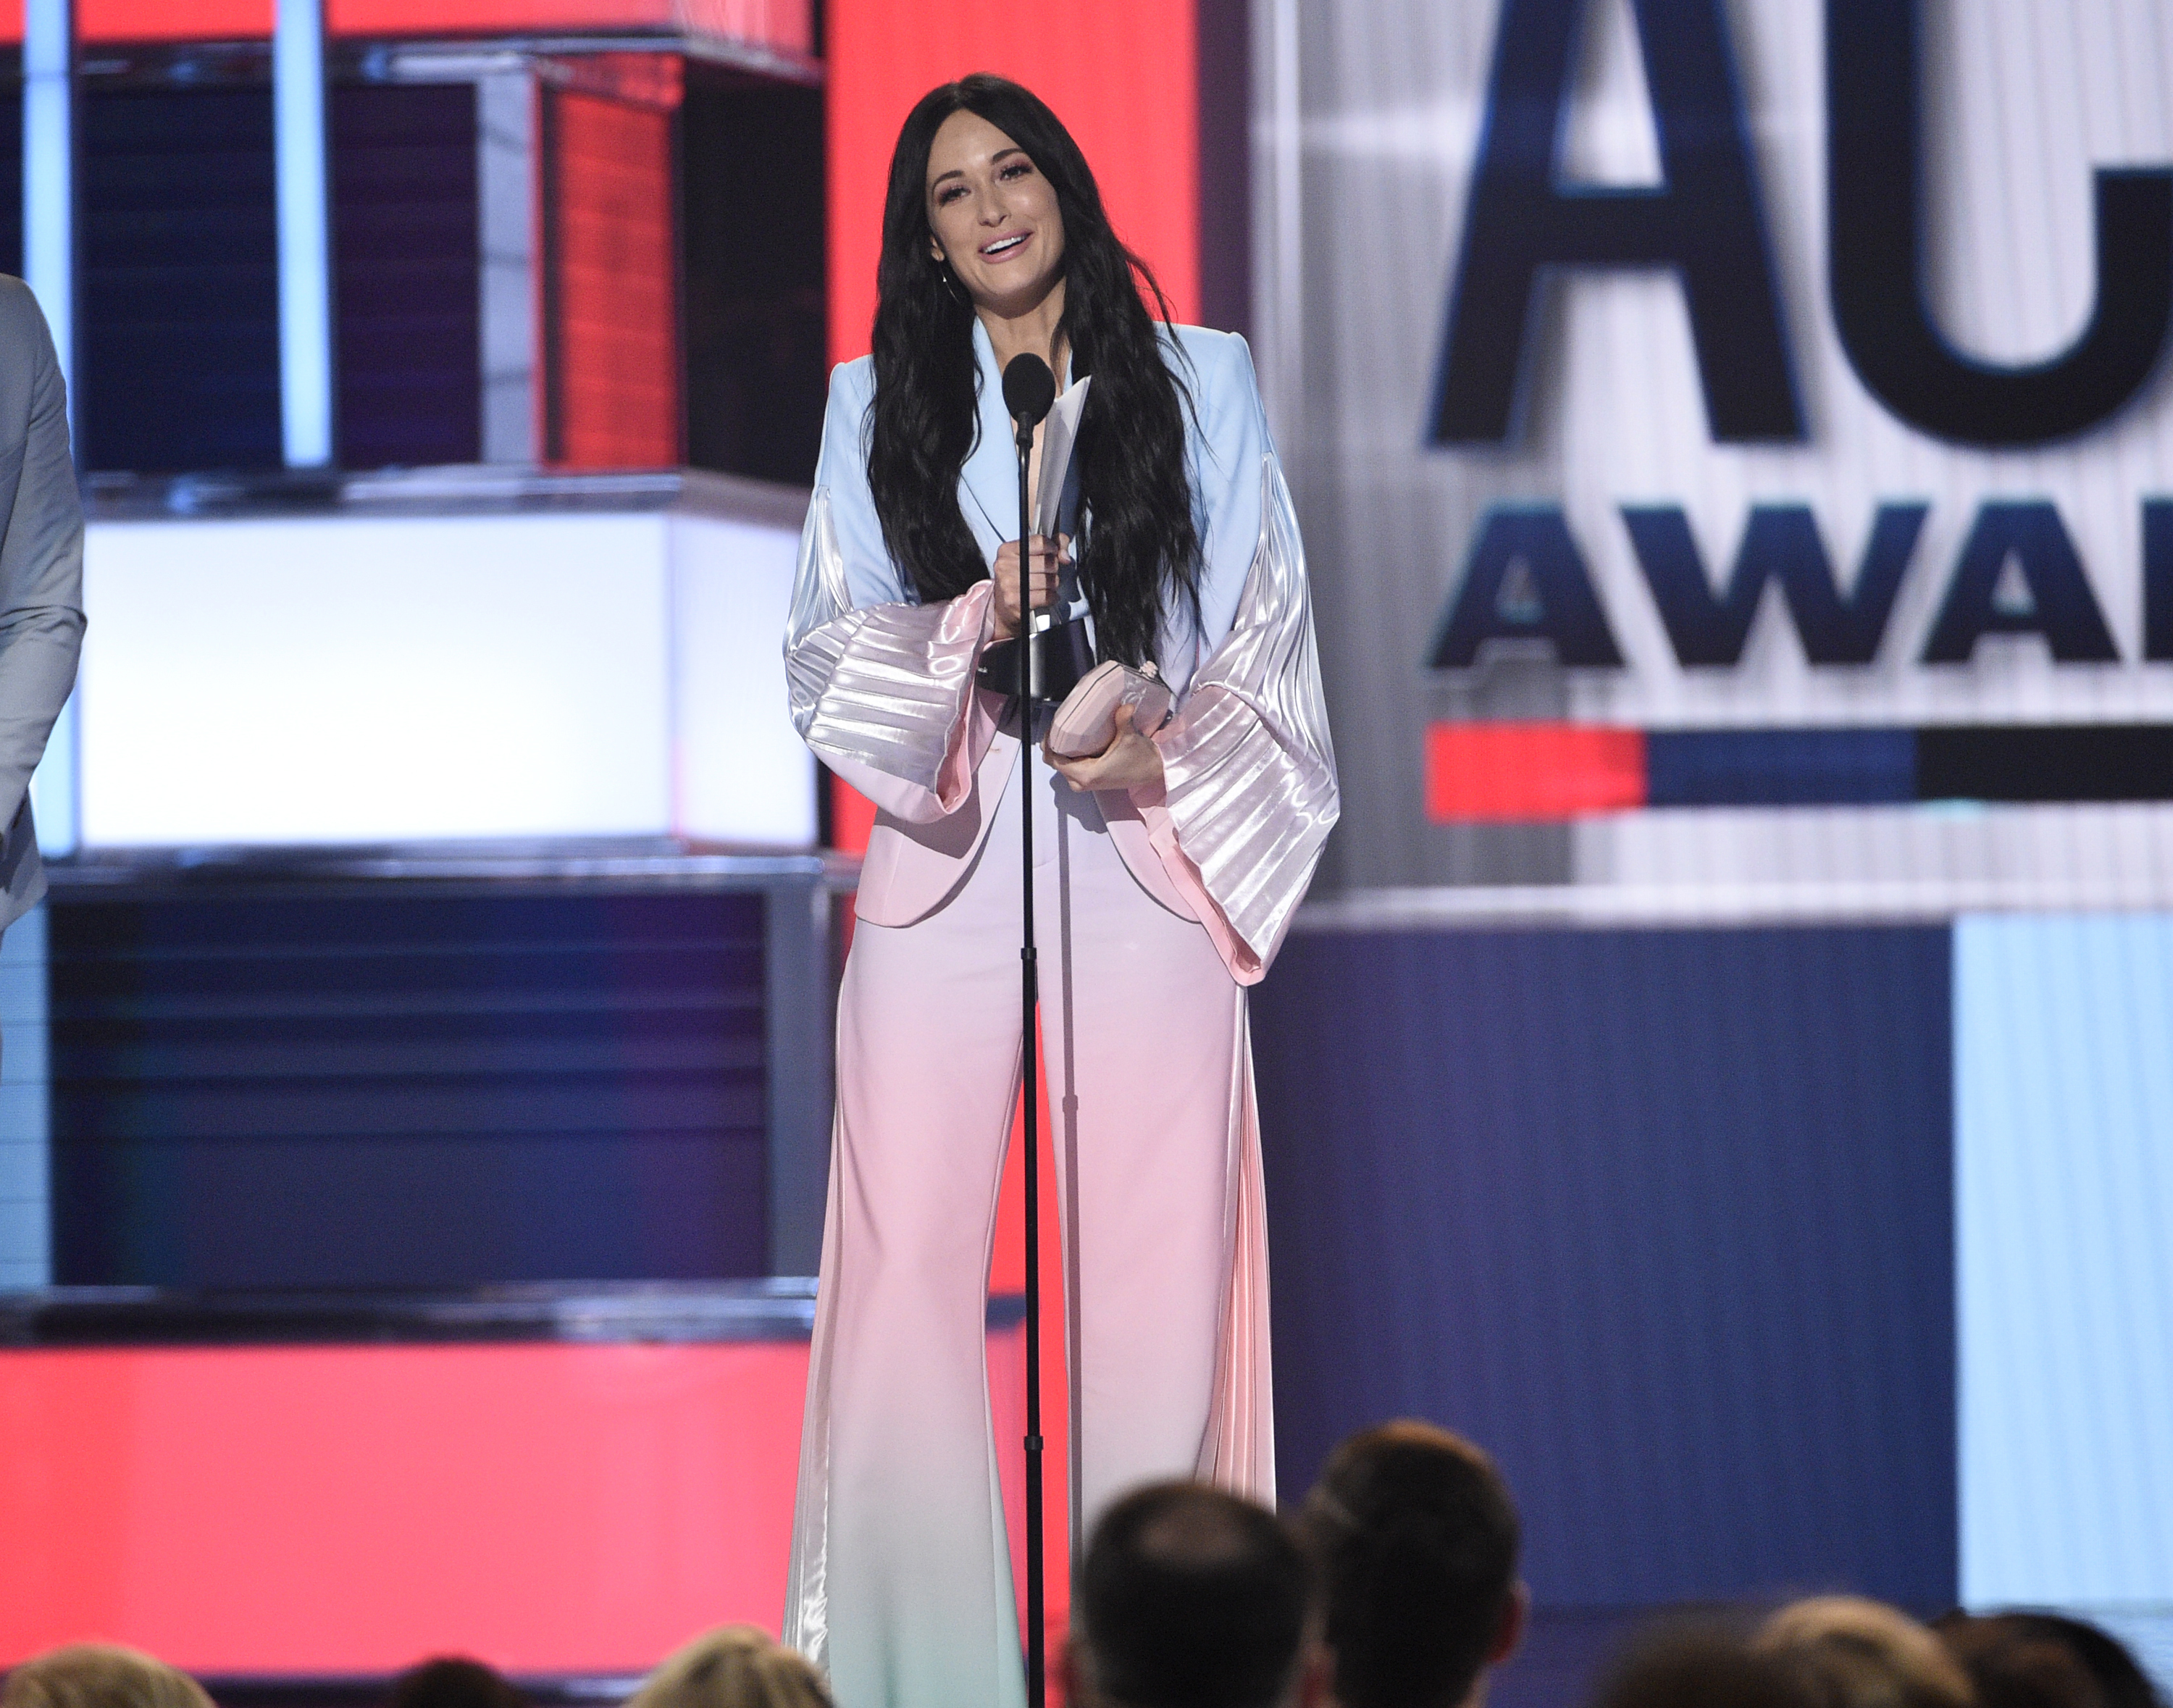 Kacey Musgraves accepts the award for female artist of the year at the 2019 Academy of Country Music Awards in Las Vegas. (Chris Pizzello/Chris Pizzello/Invision/AP)